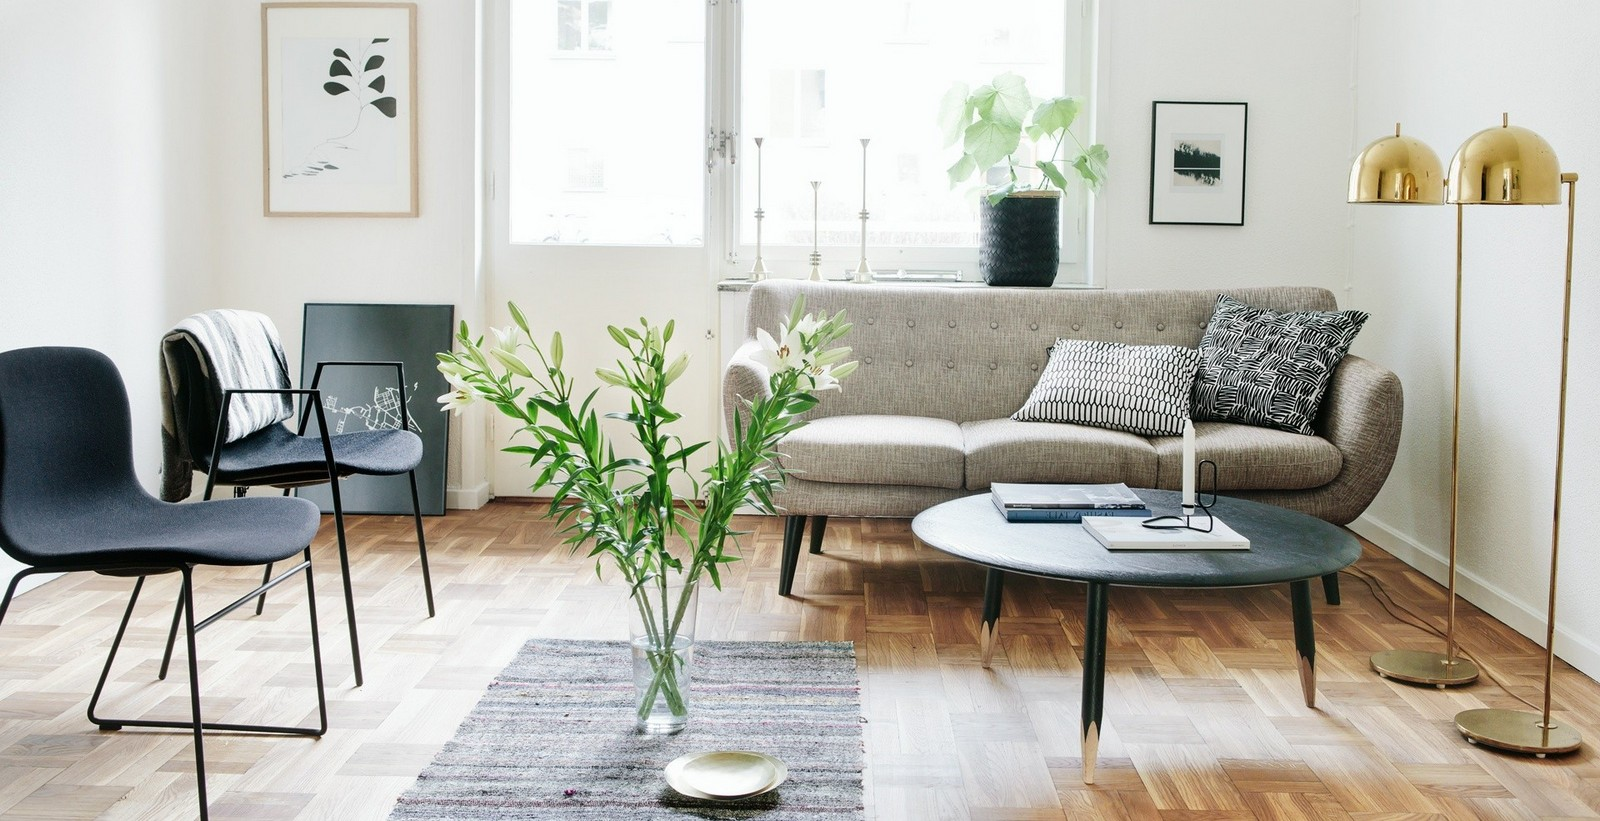 How to choose a lamp for an interior